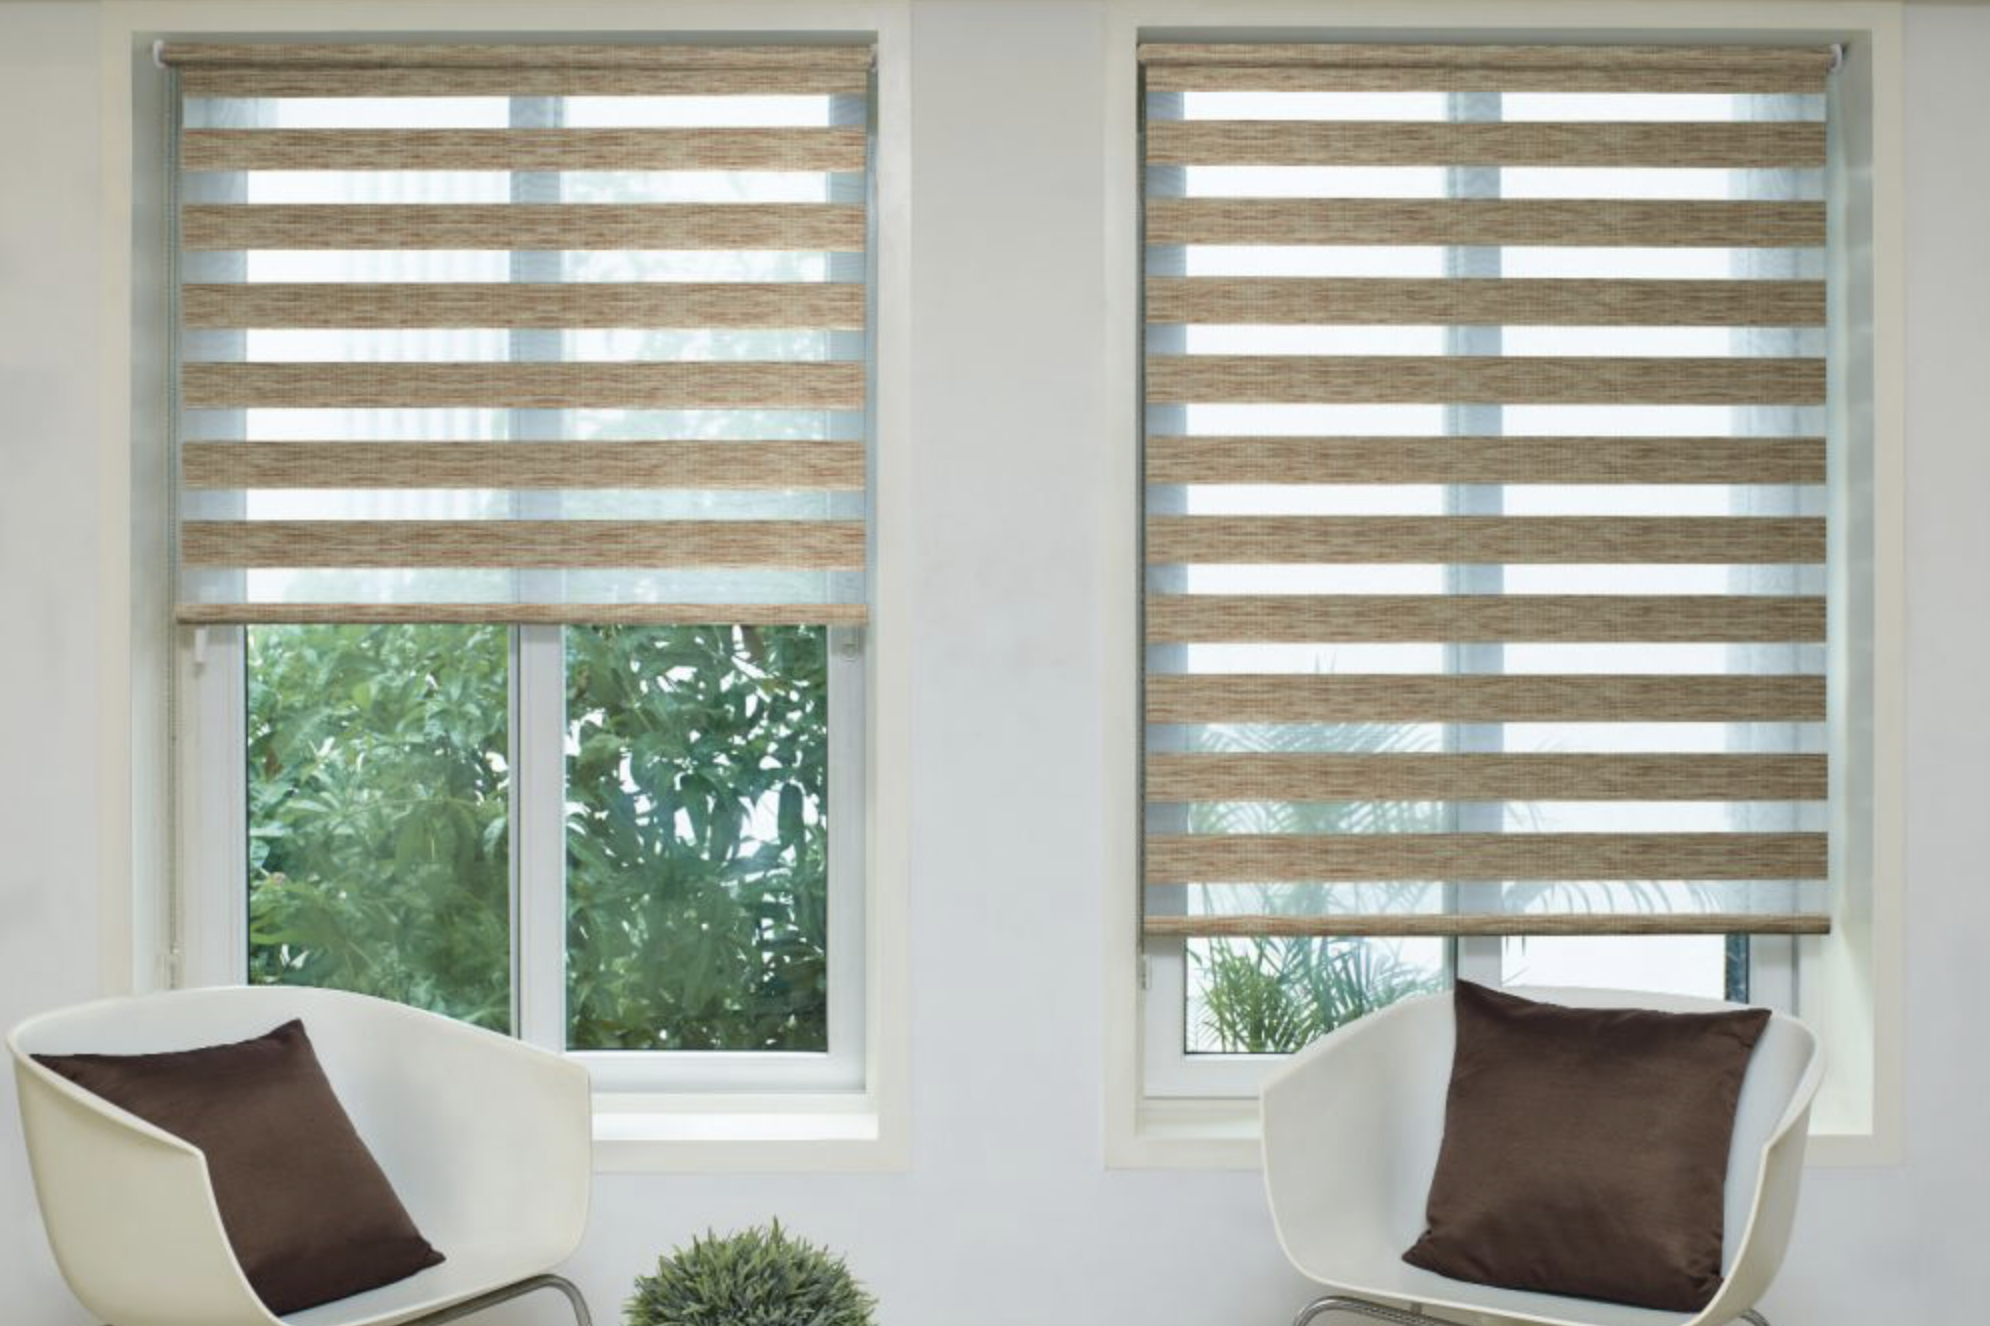 Night and Day blinds are both minimalist and eye catching